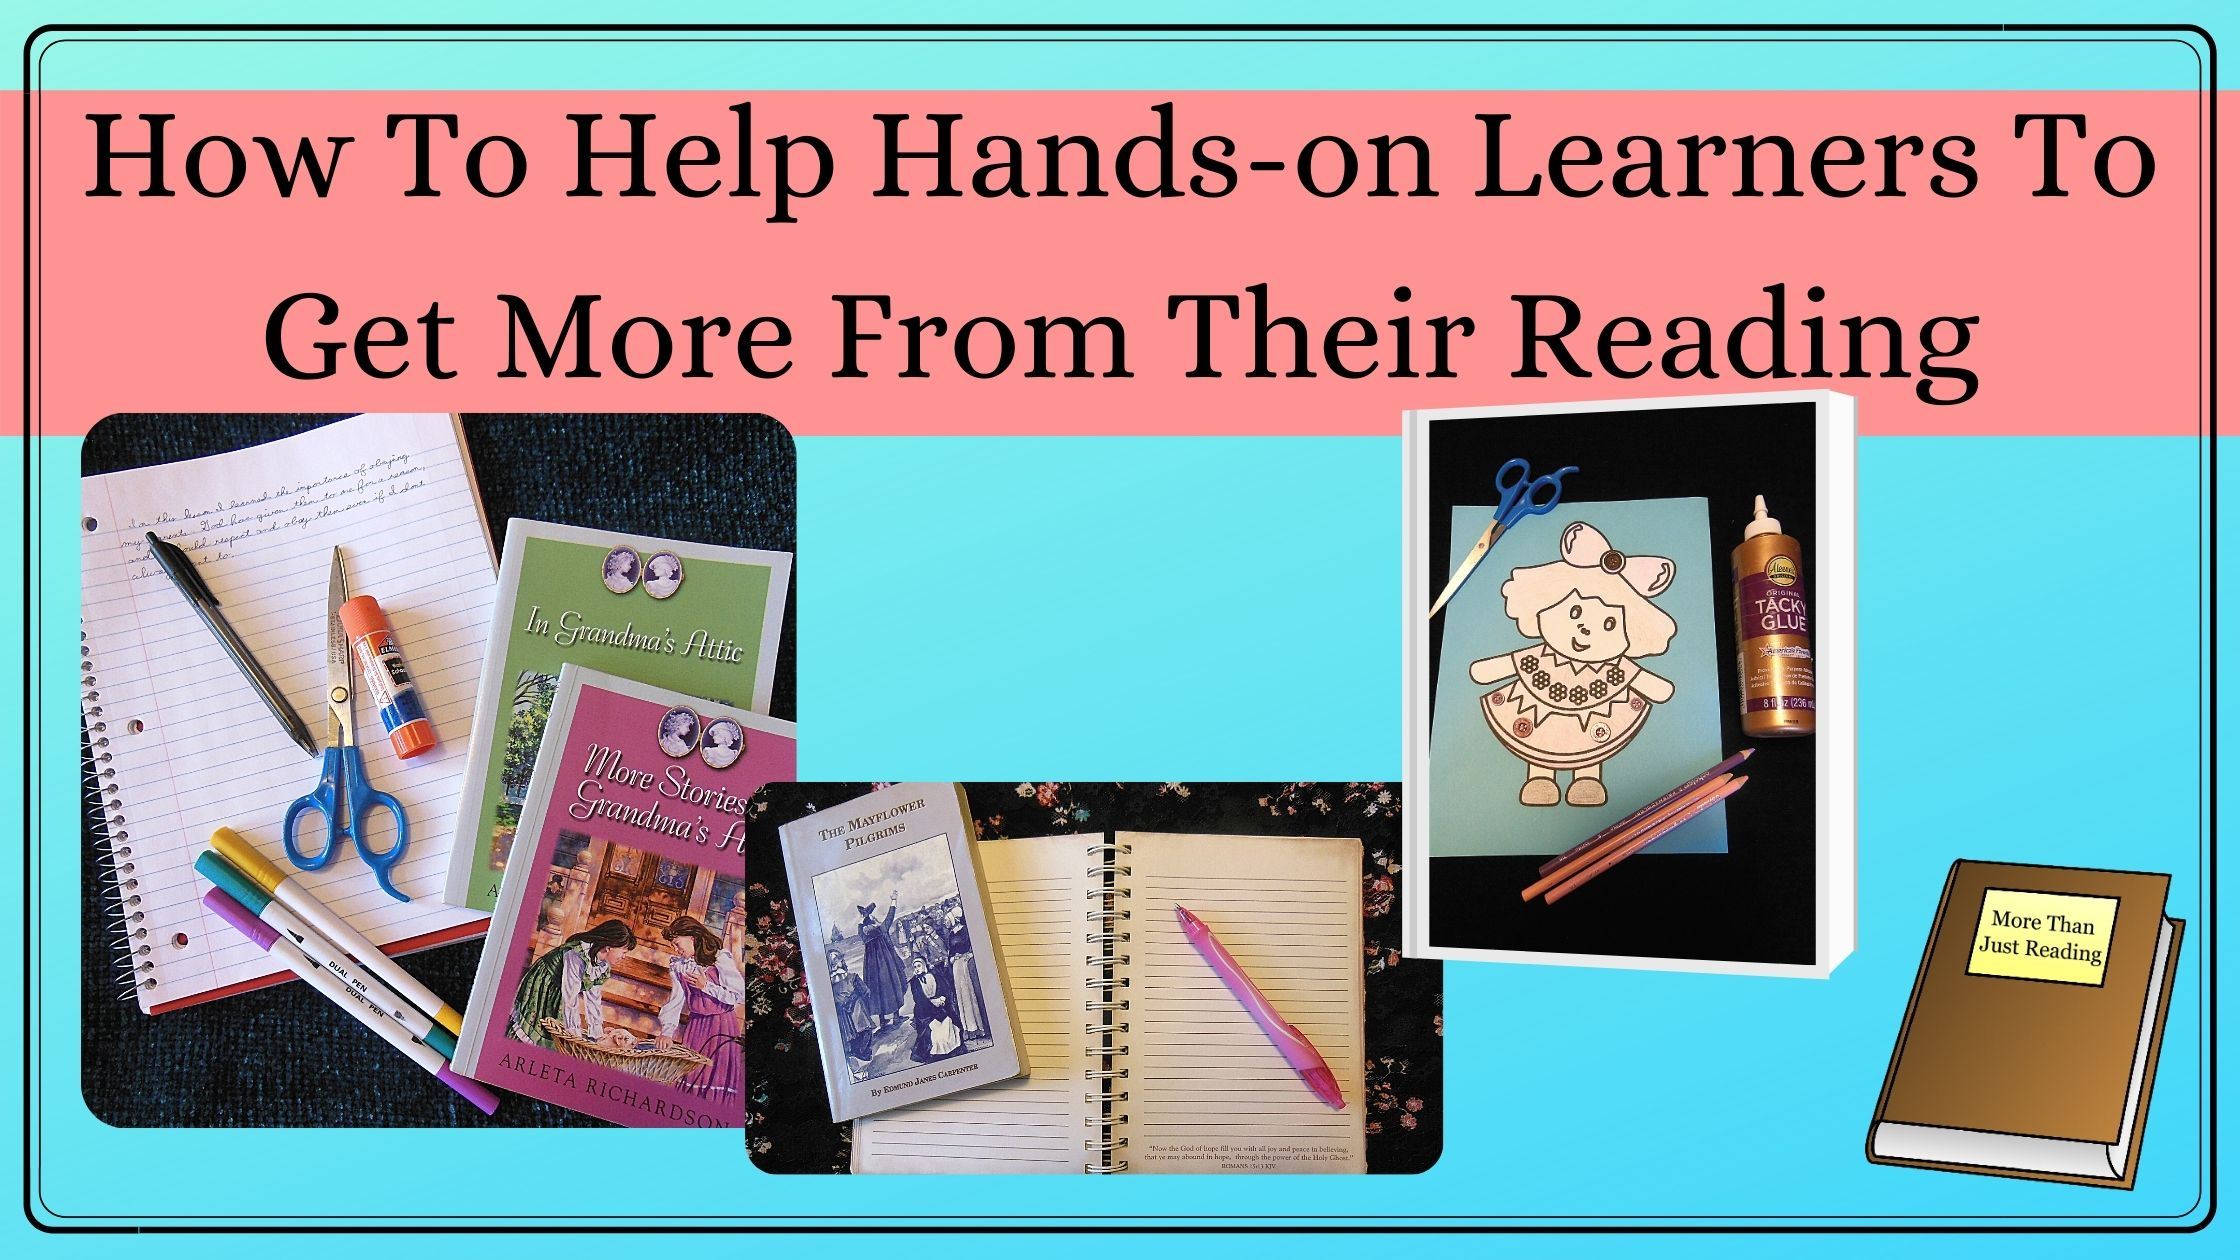 hands-on learners